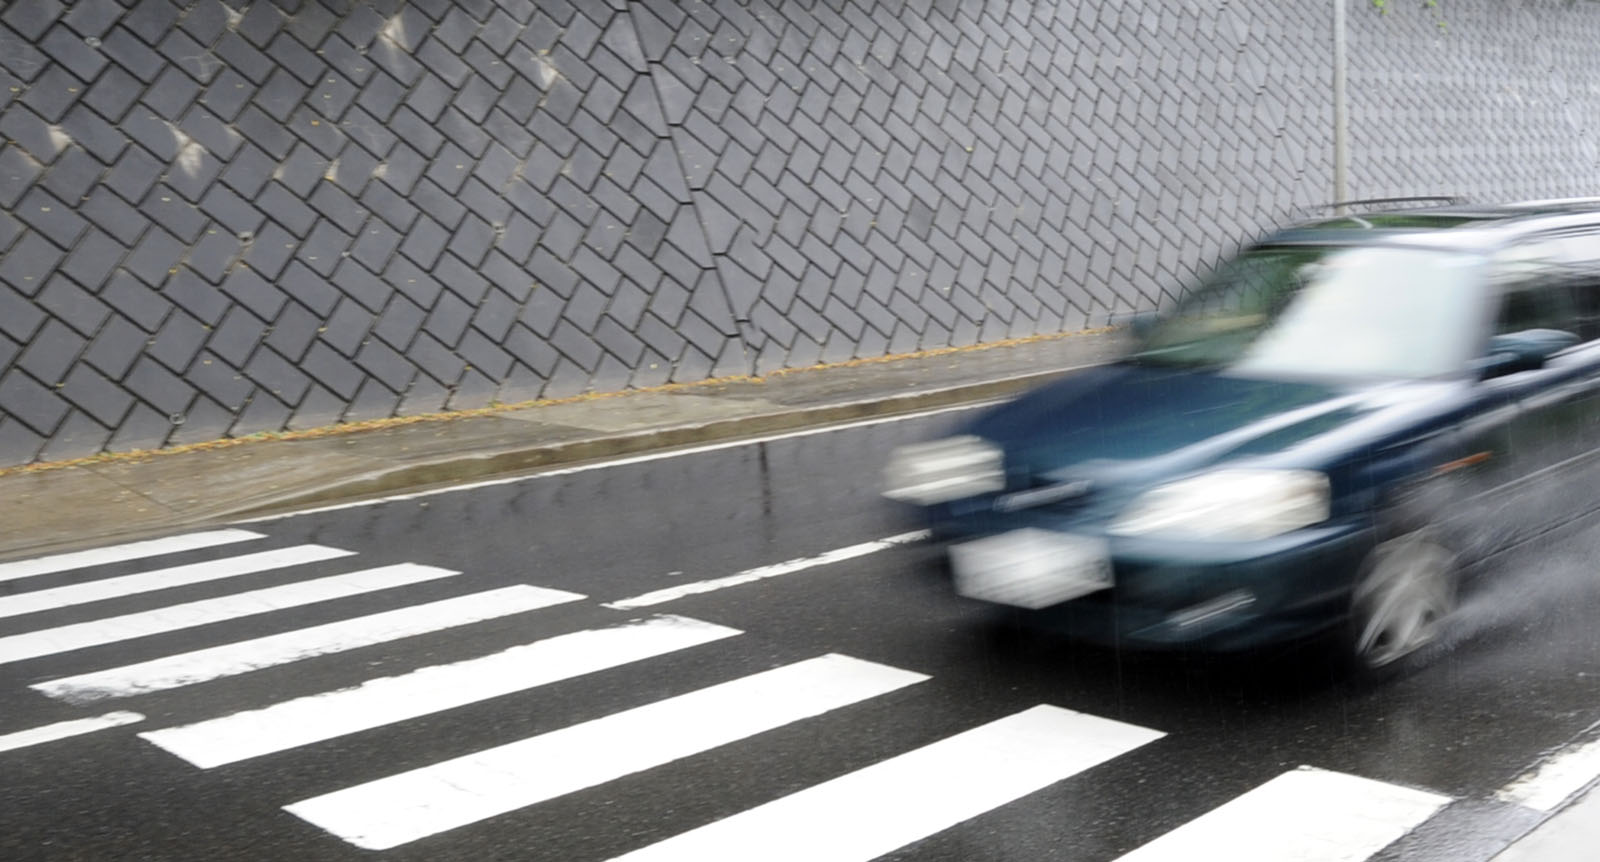 Vancouver Pedestrian Accident Lawyer